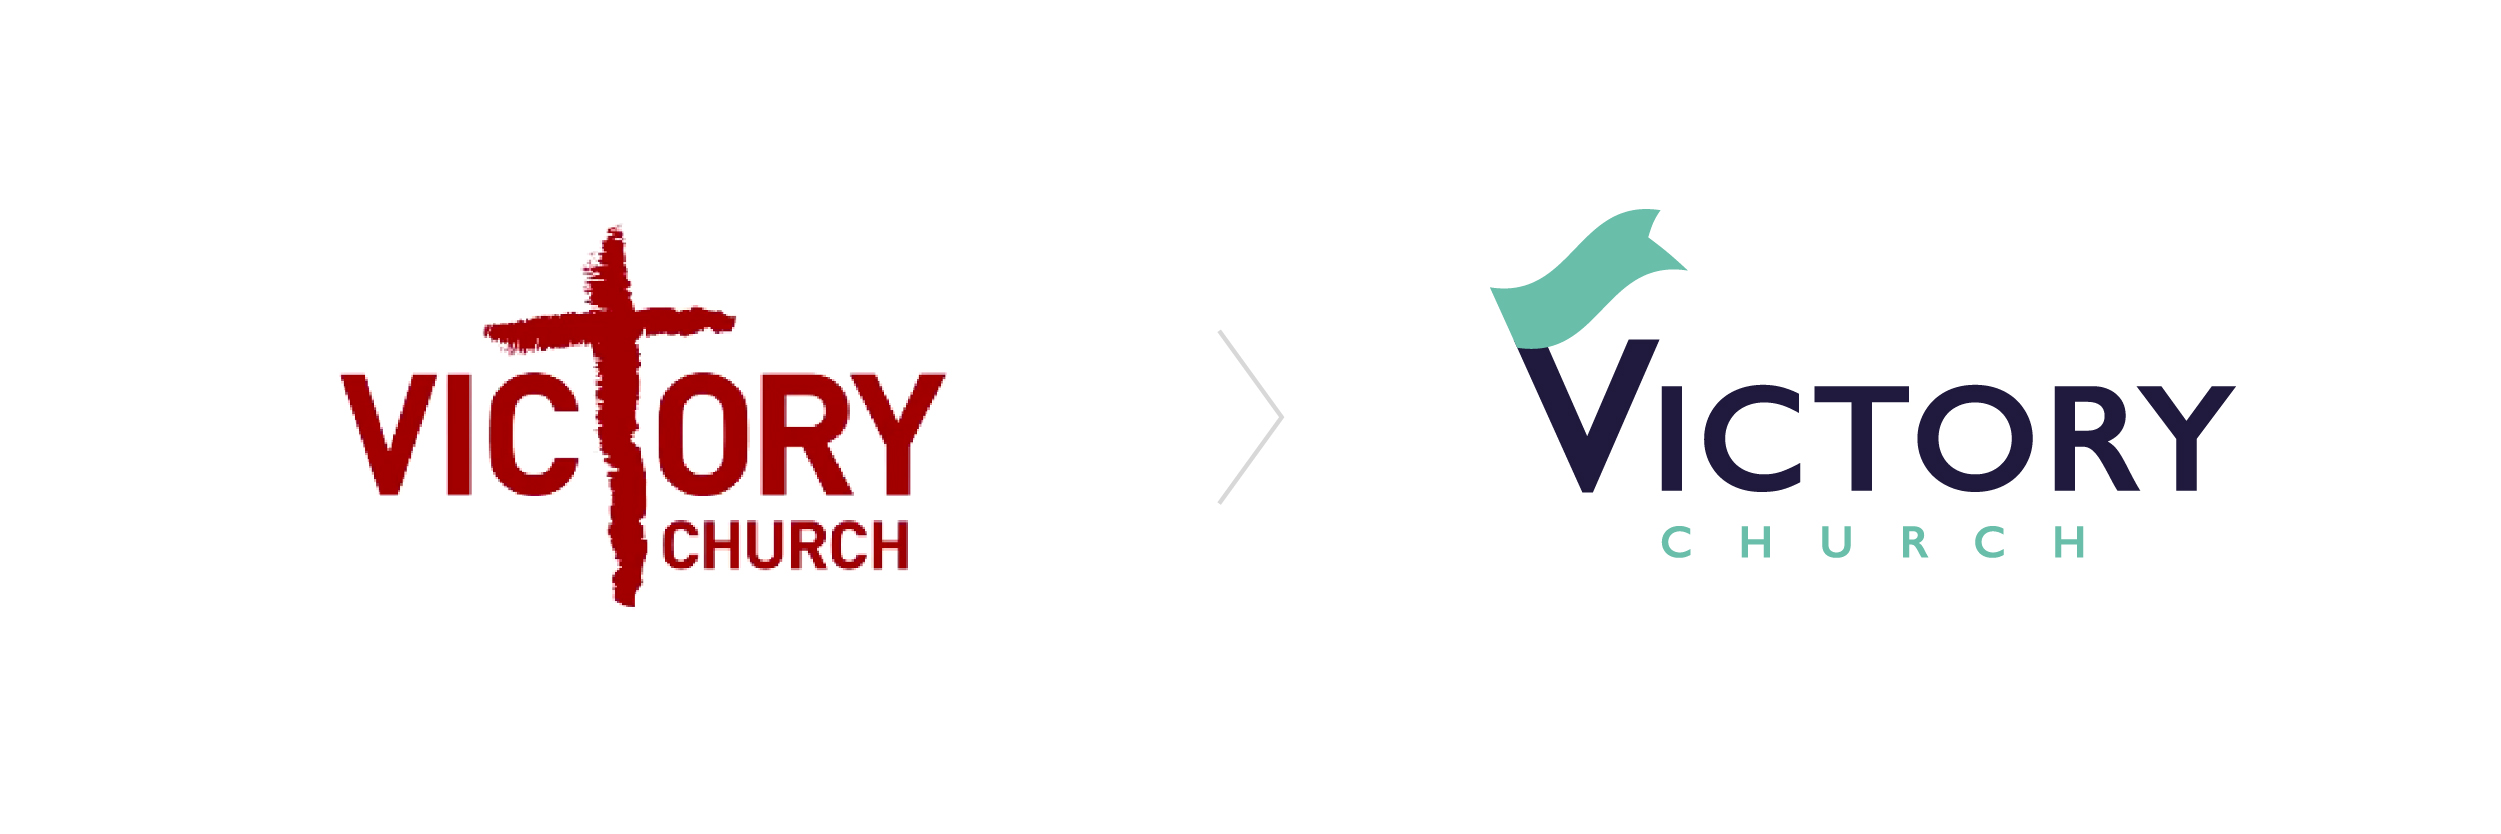 Victory Church logo before and after